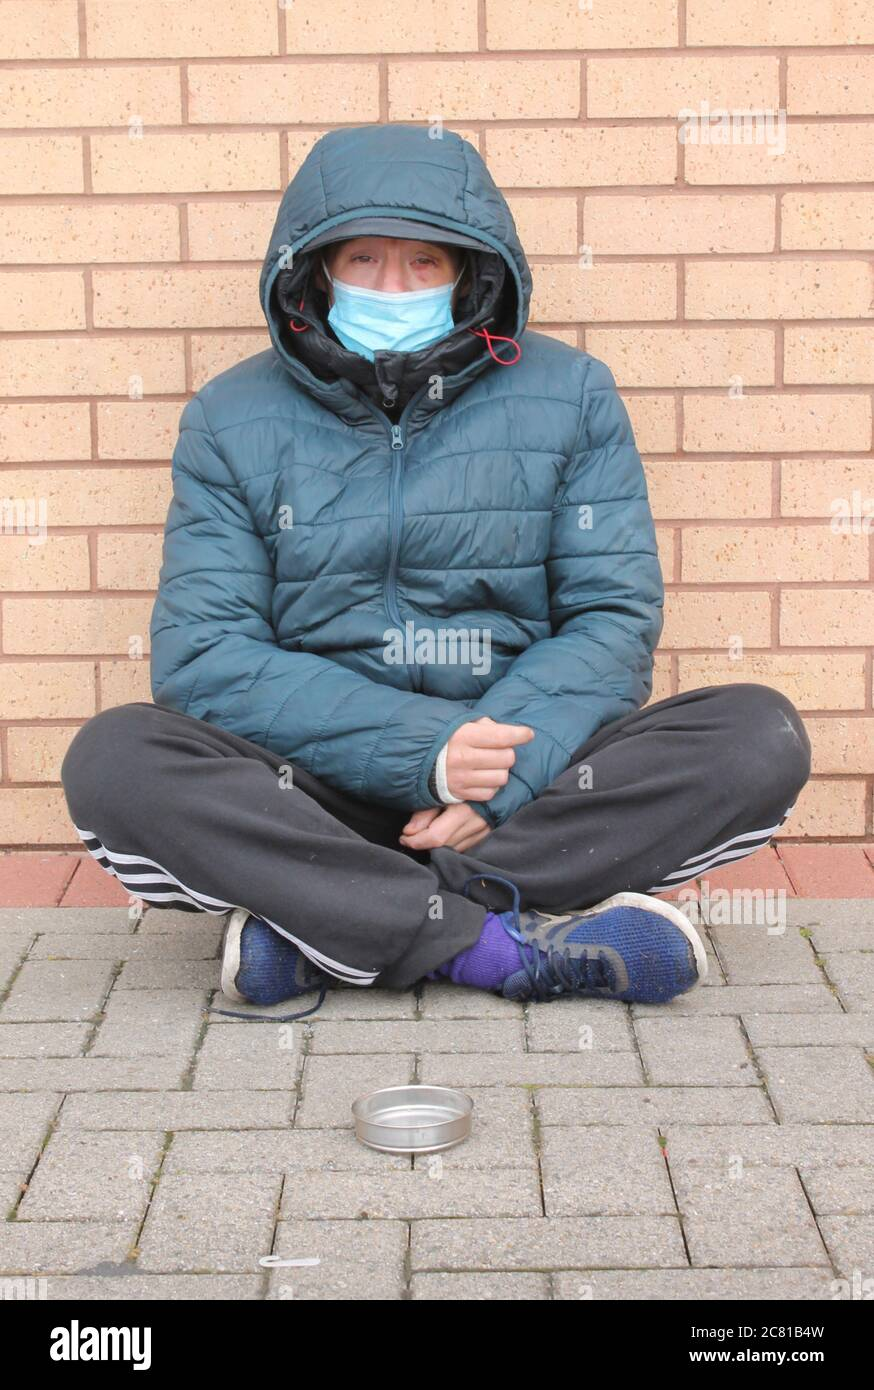 Homeless women with bruised eye, wearing a blue mask sitting on the floor with legs crossed begging for change Stock Photo